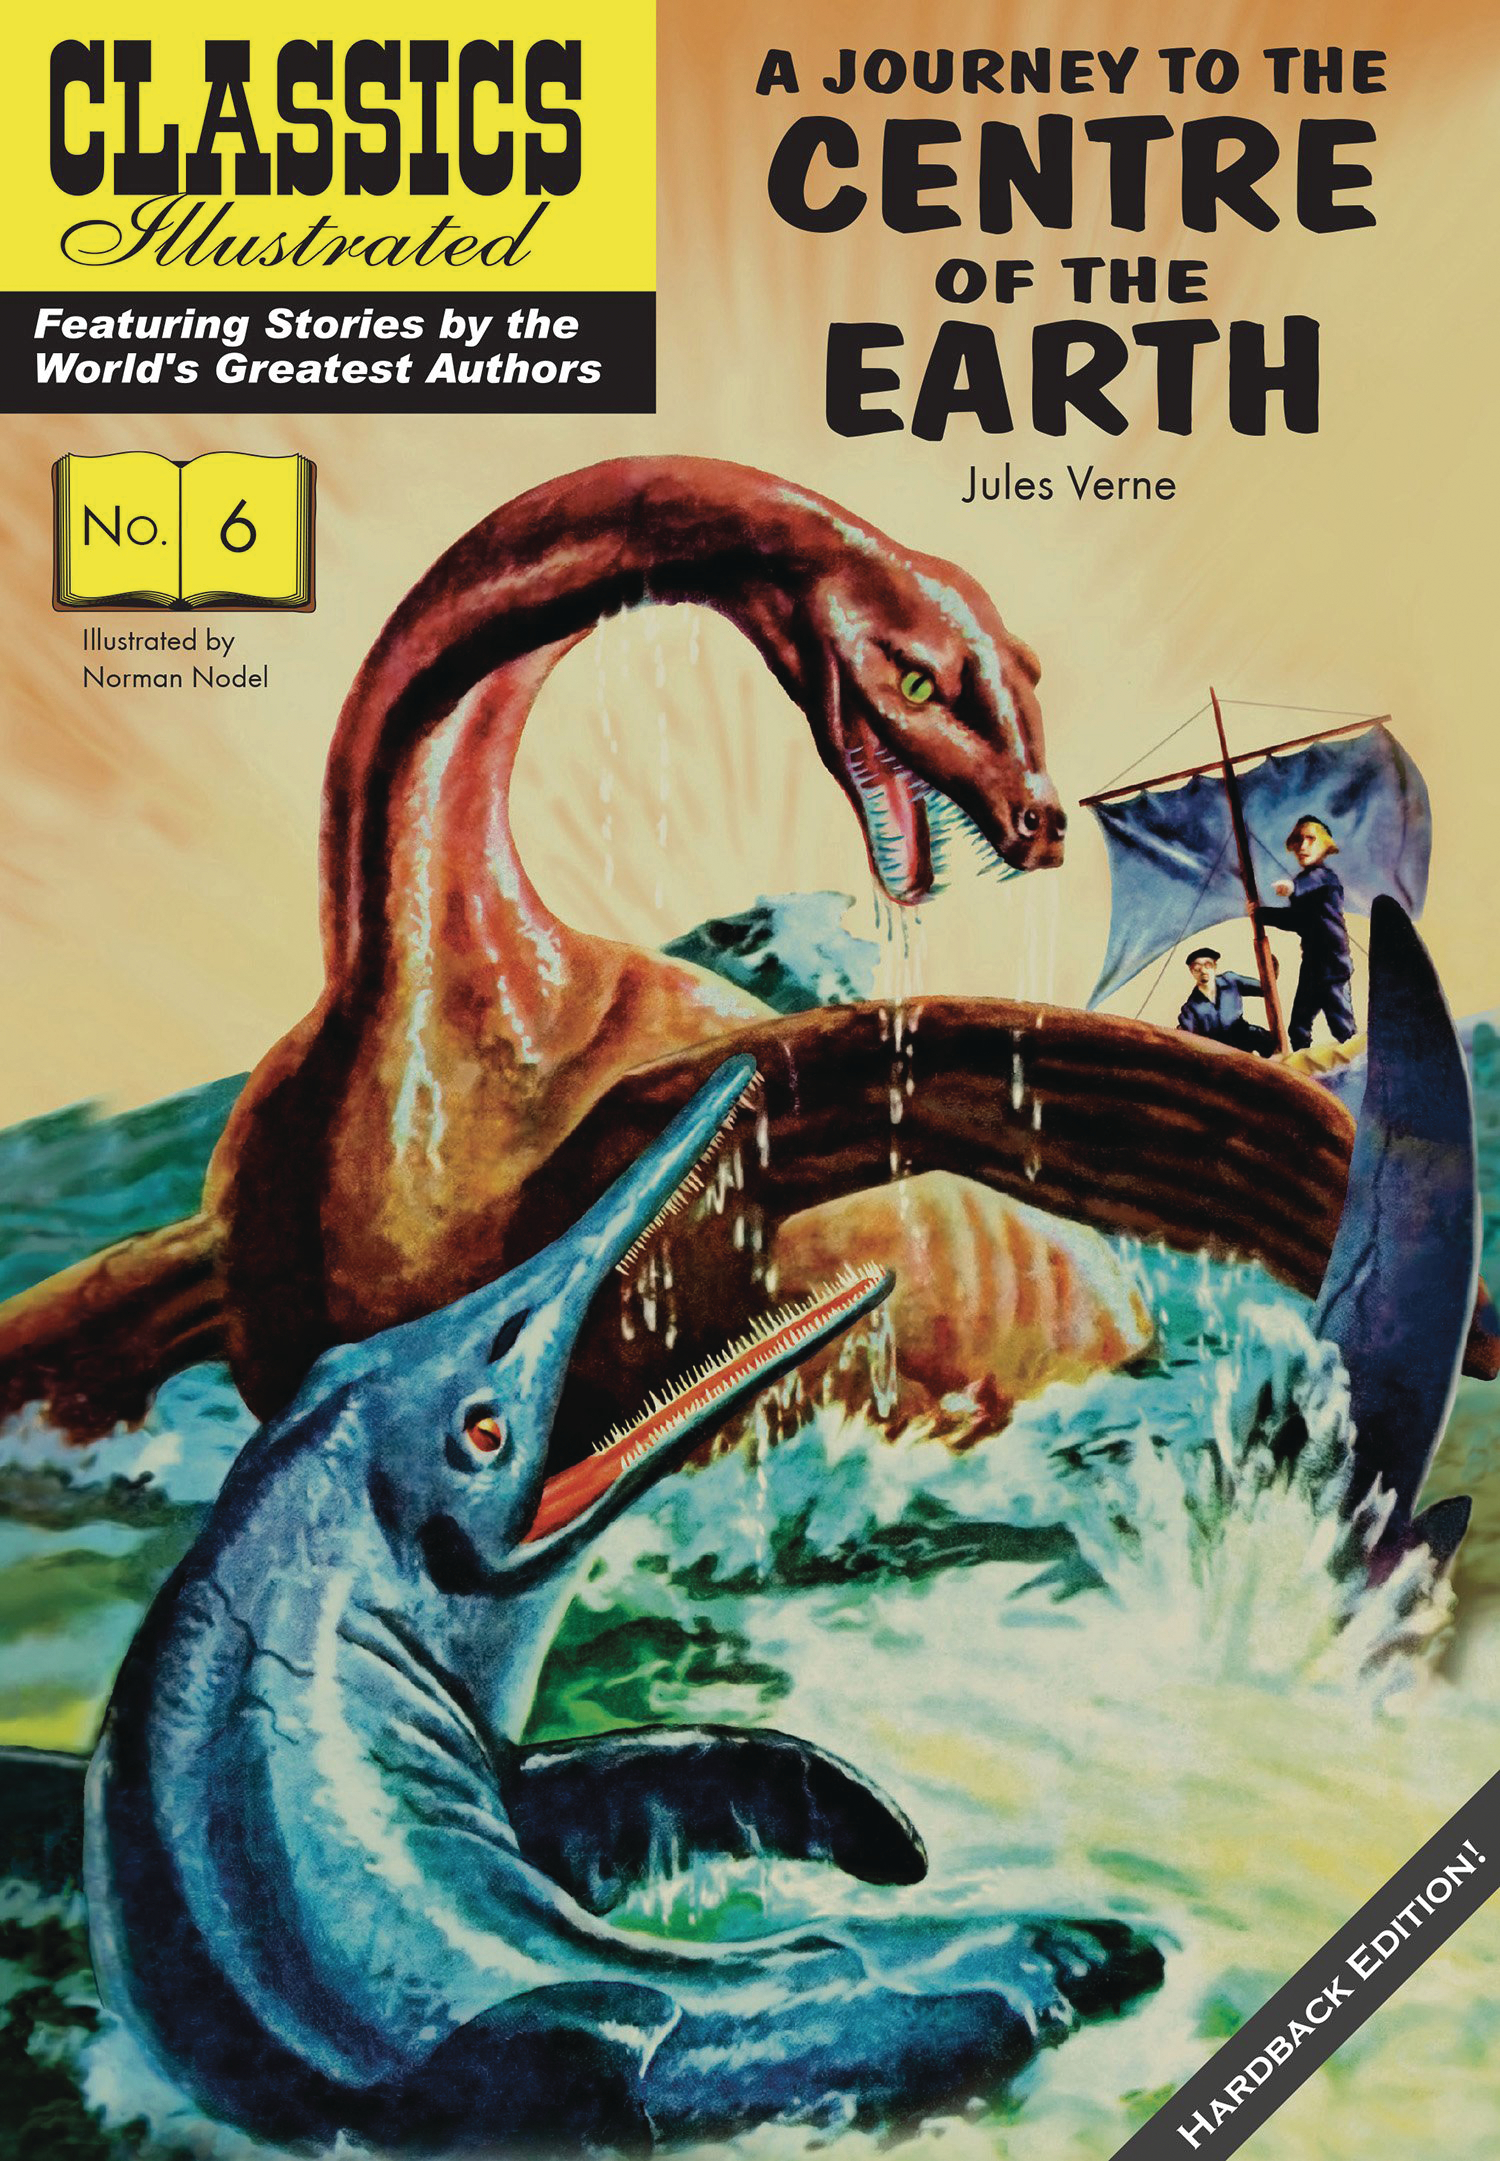 CLASSIC ILLUSTRATED REPLICA ED HC JOURNEY TO CENTER OF EARTH